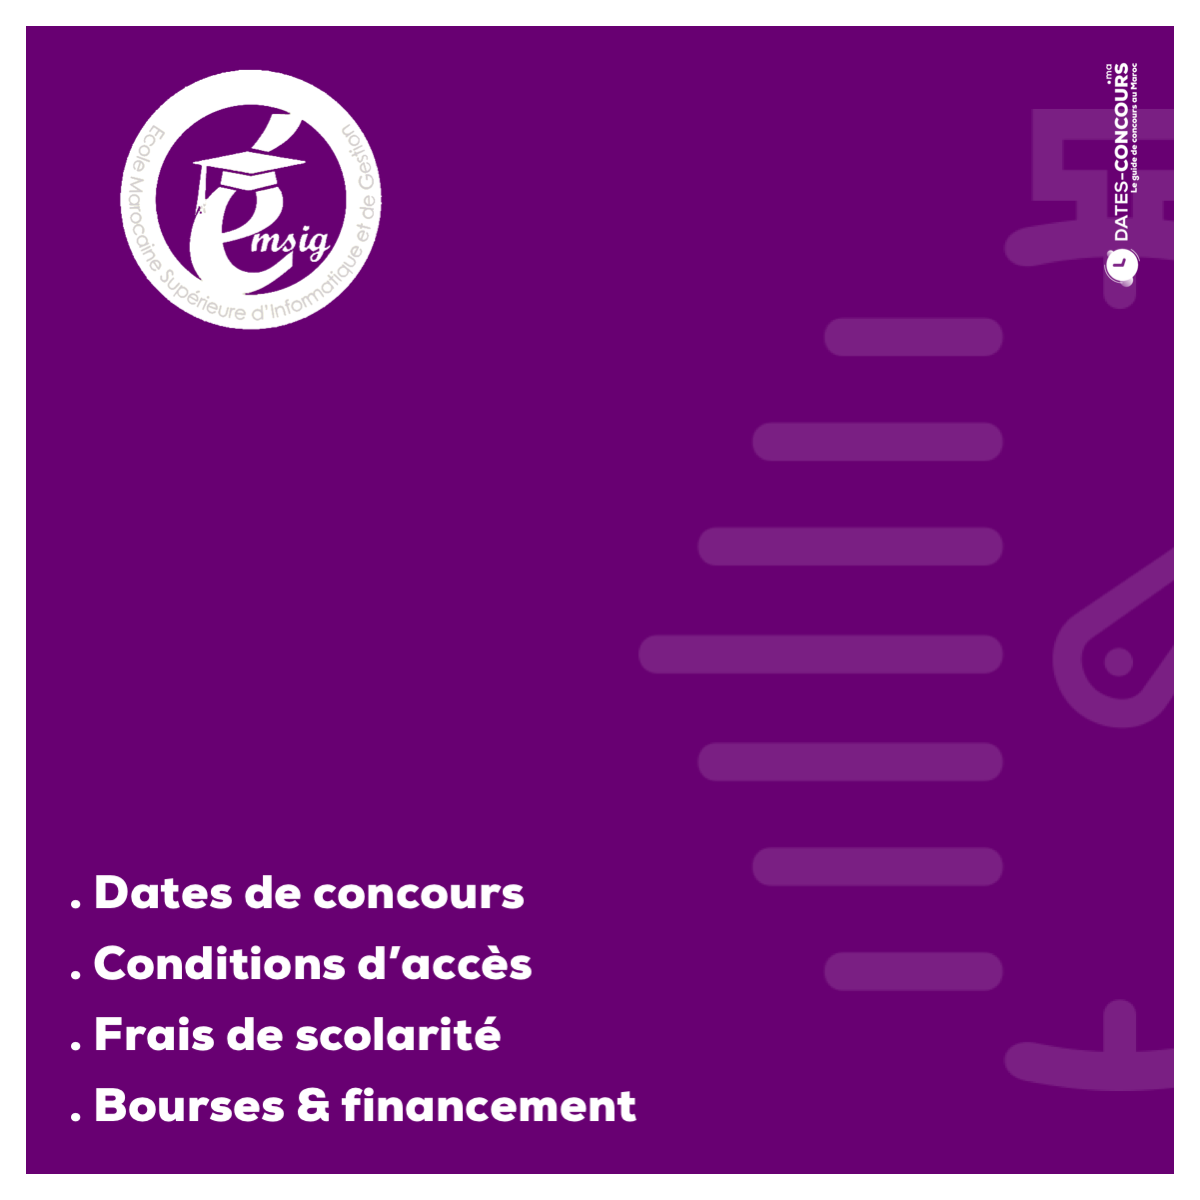 EMSIG - Dates-concours.ma